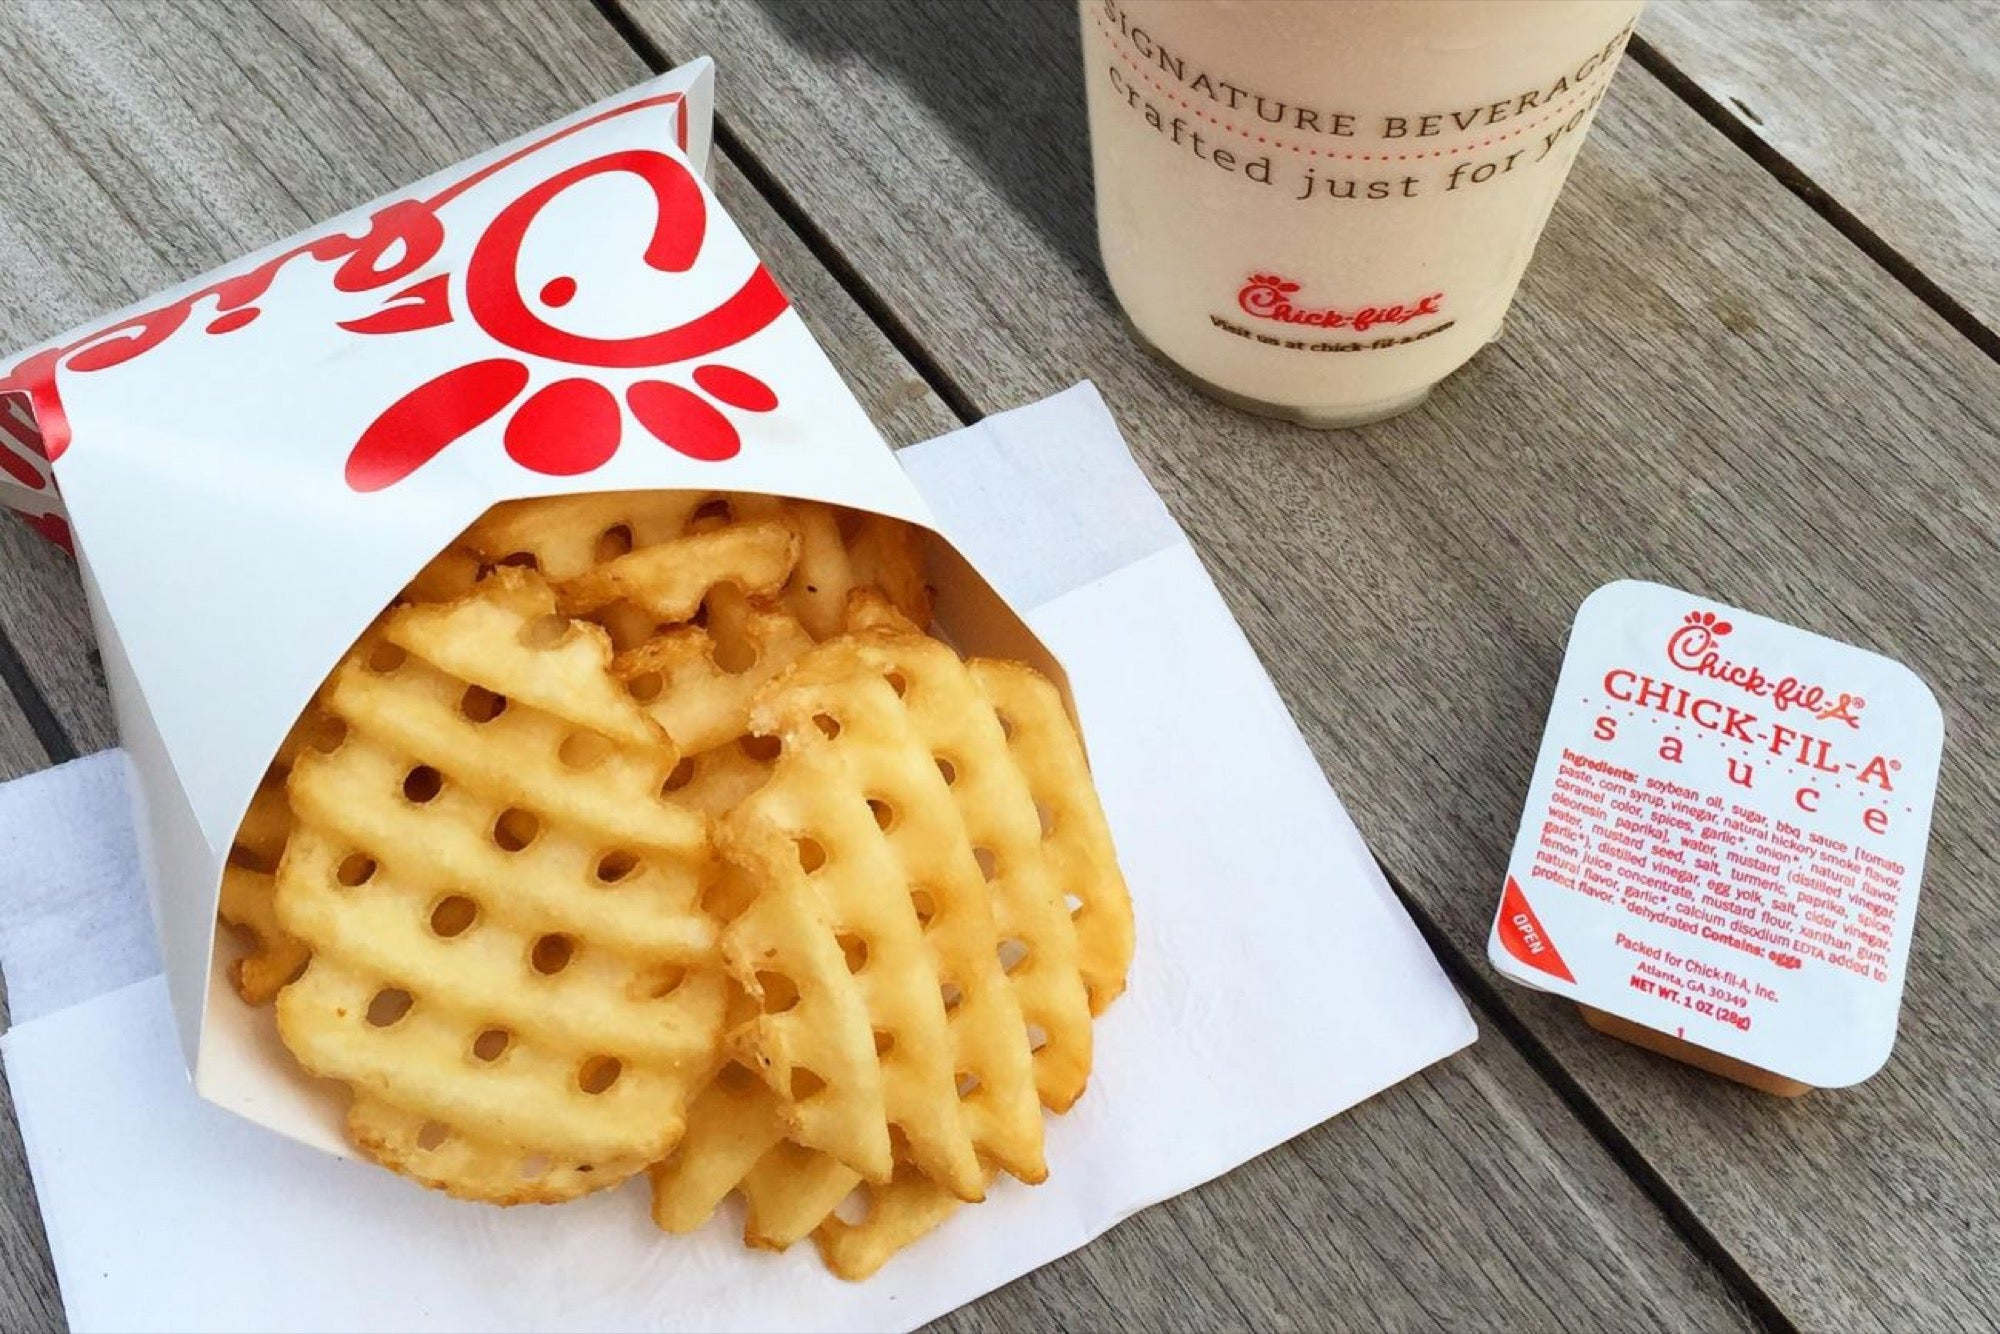 photograph regarding Chick Fil a Printable Applications titled 25 Intriguing Information By yourself Must Understand In excess of Chick-fil-A